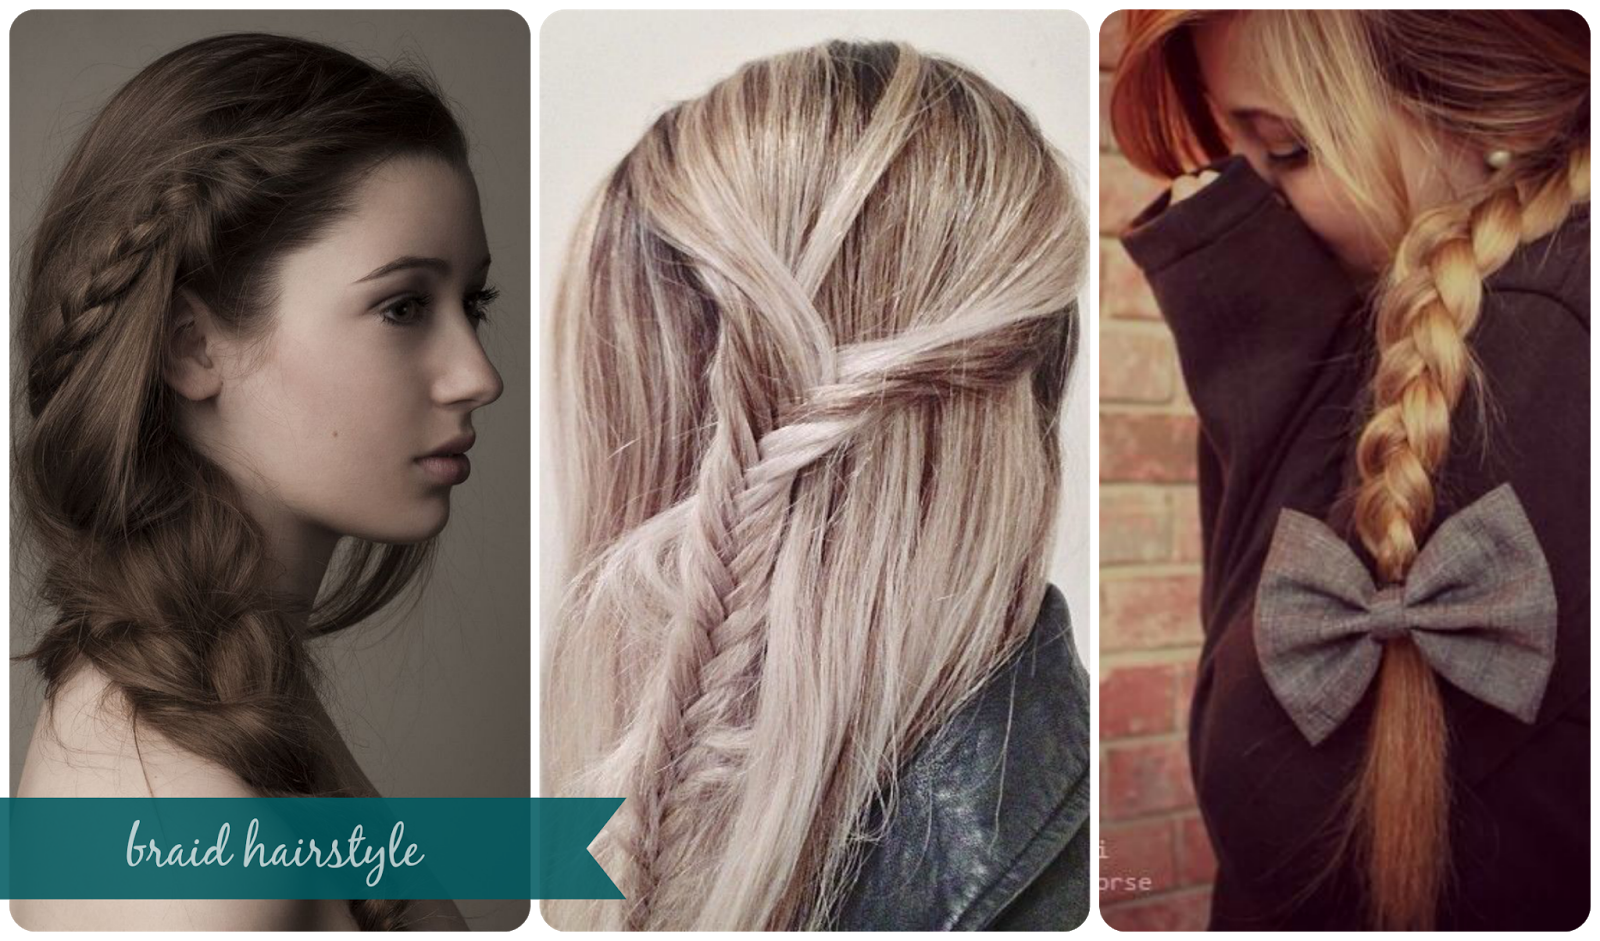 Braid Hairstyle Trenzas Recogidos Semi Recogidos Cute Ghd